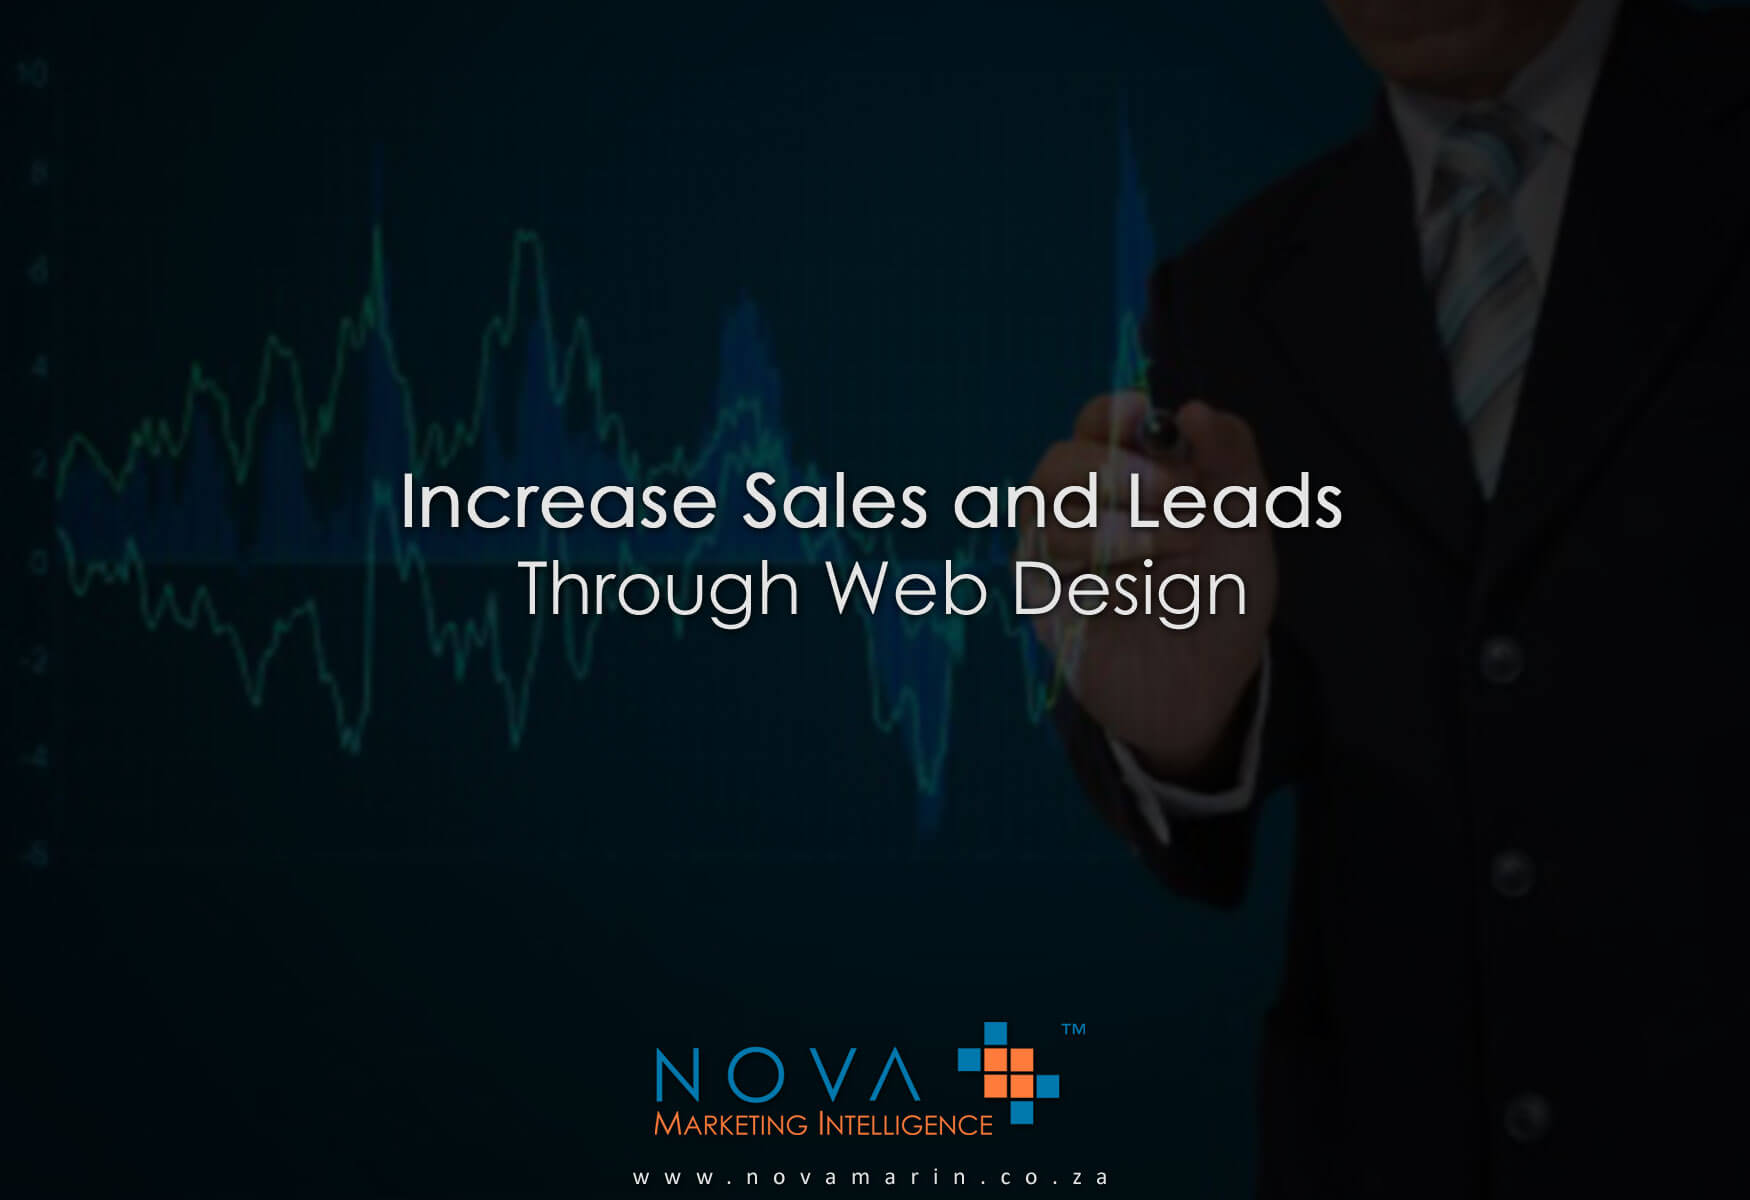 Increase Sales and Leads using Web Design.